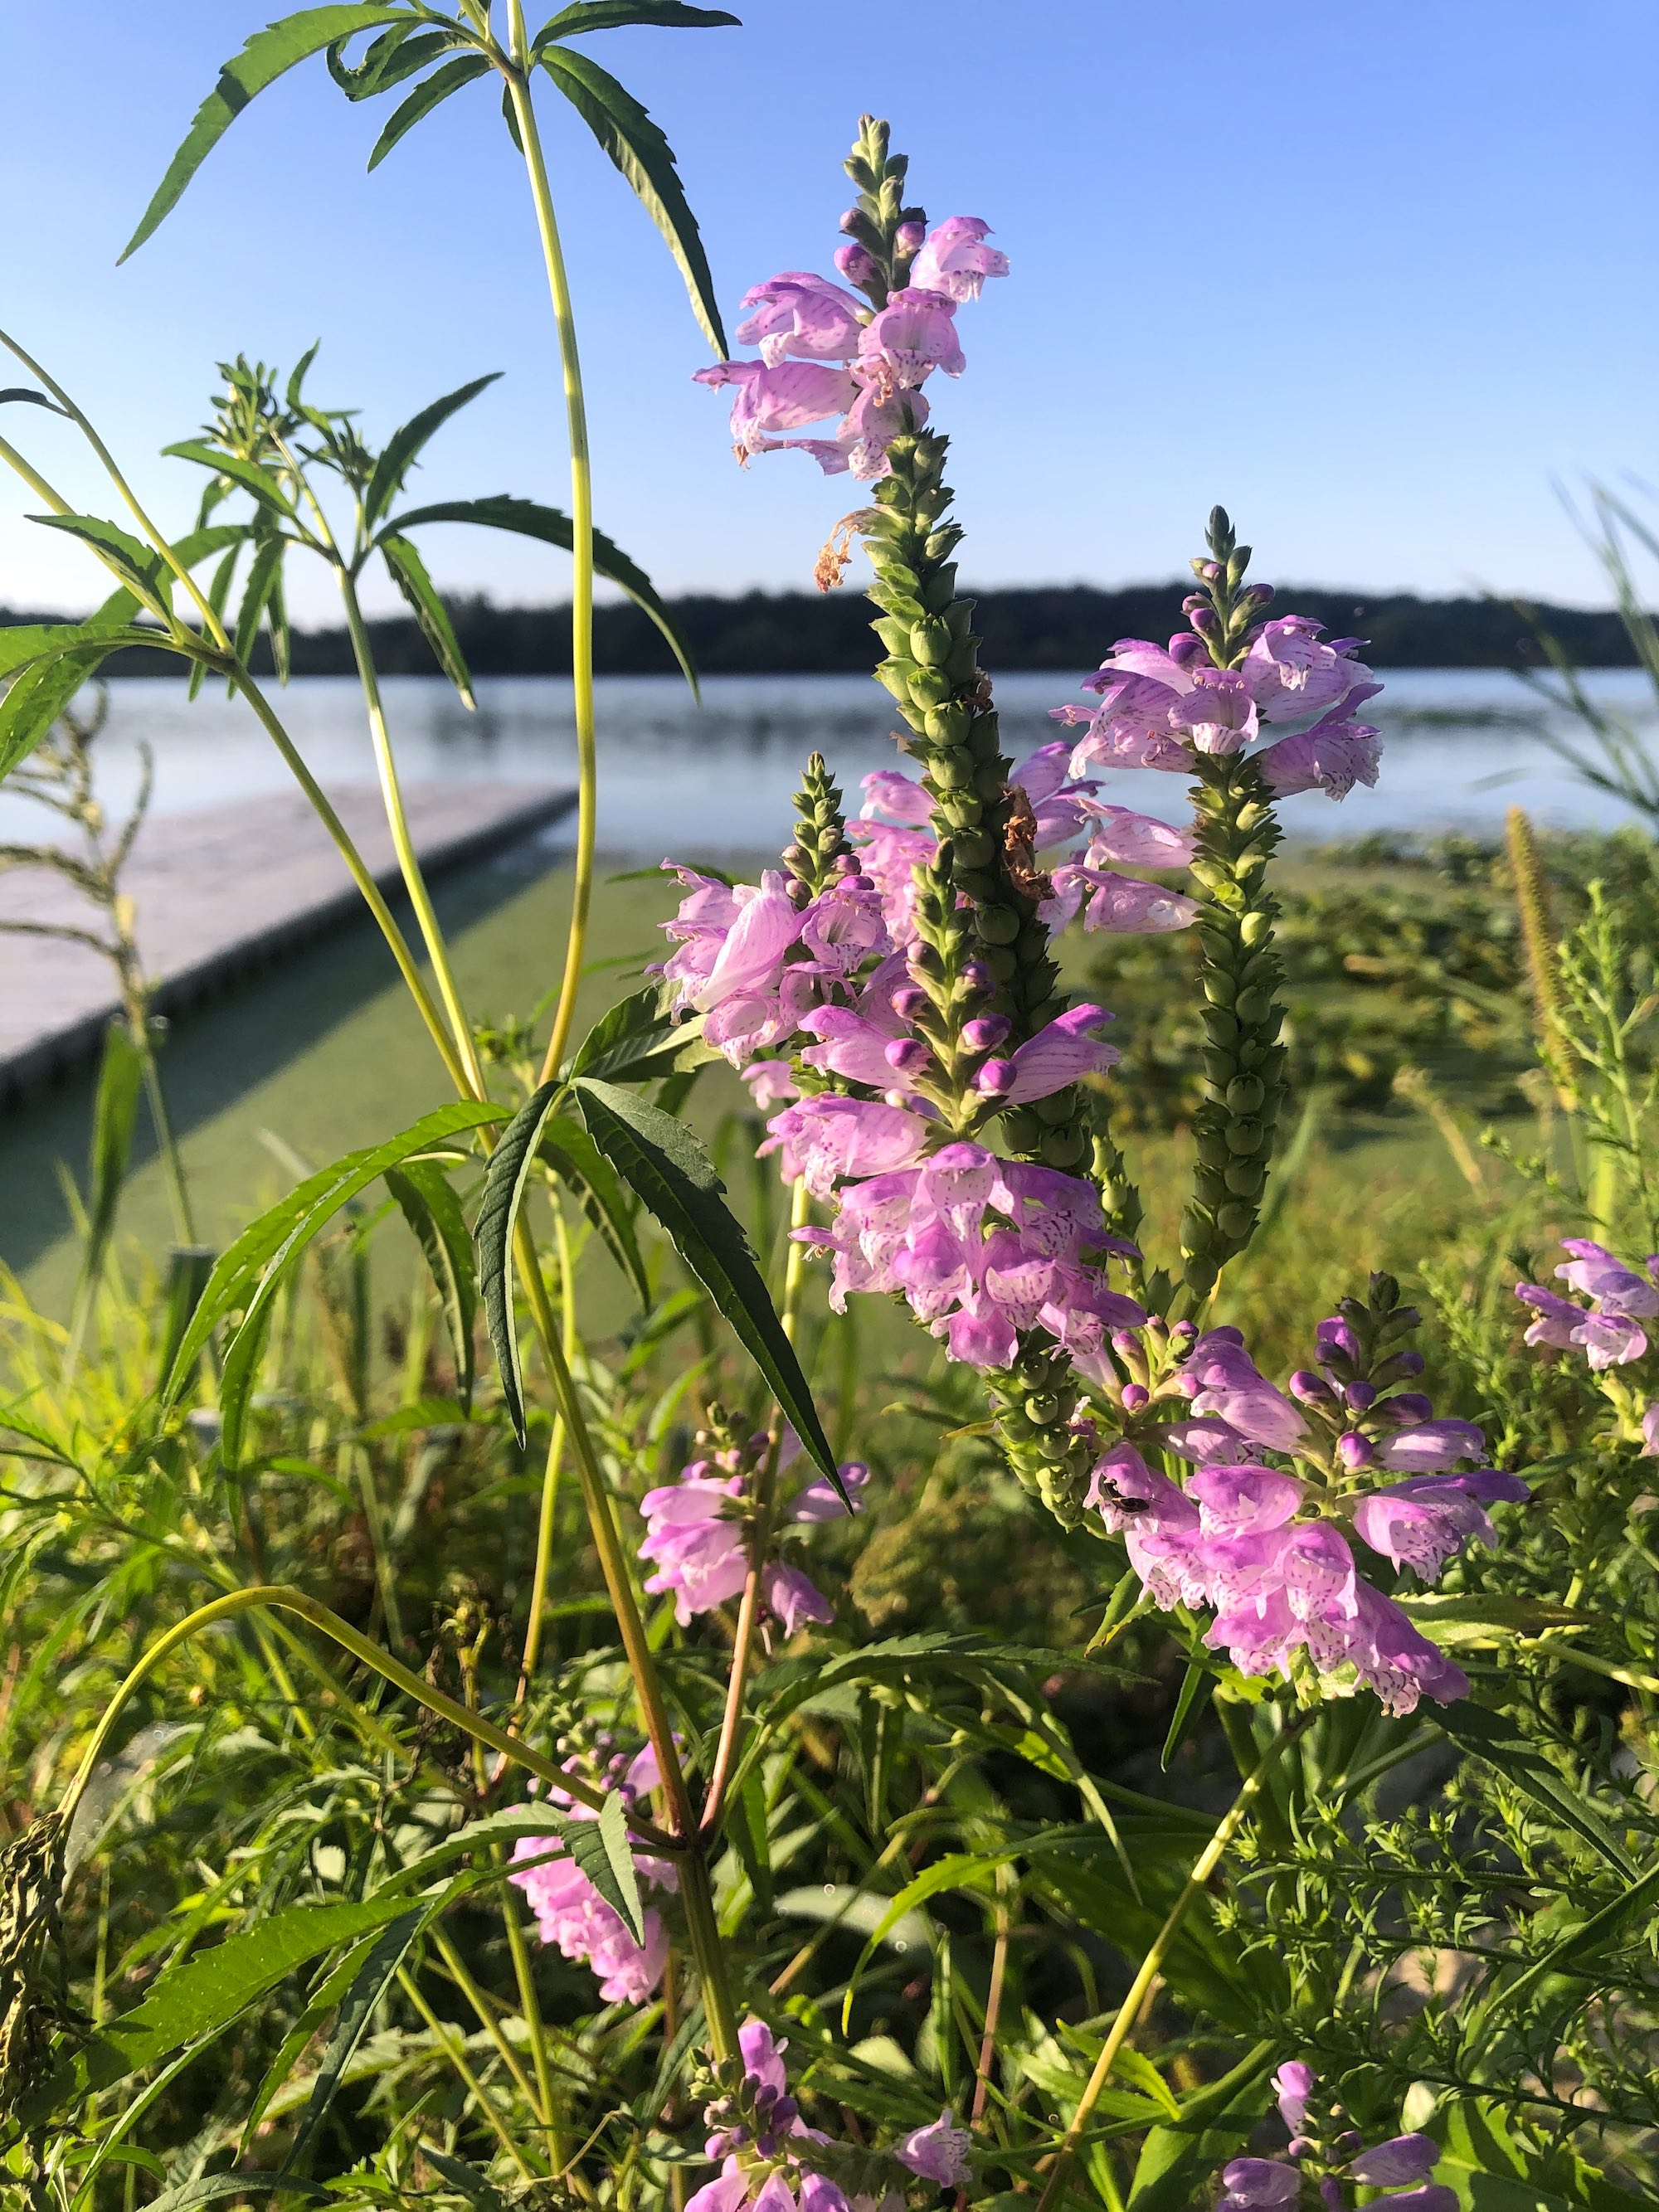 Obedient Plant on shore of Lake Wingra in Wingra Park in Madison, Wisconsin on August 21, 2020.